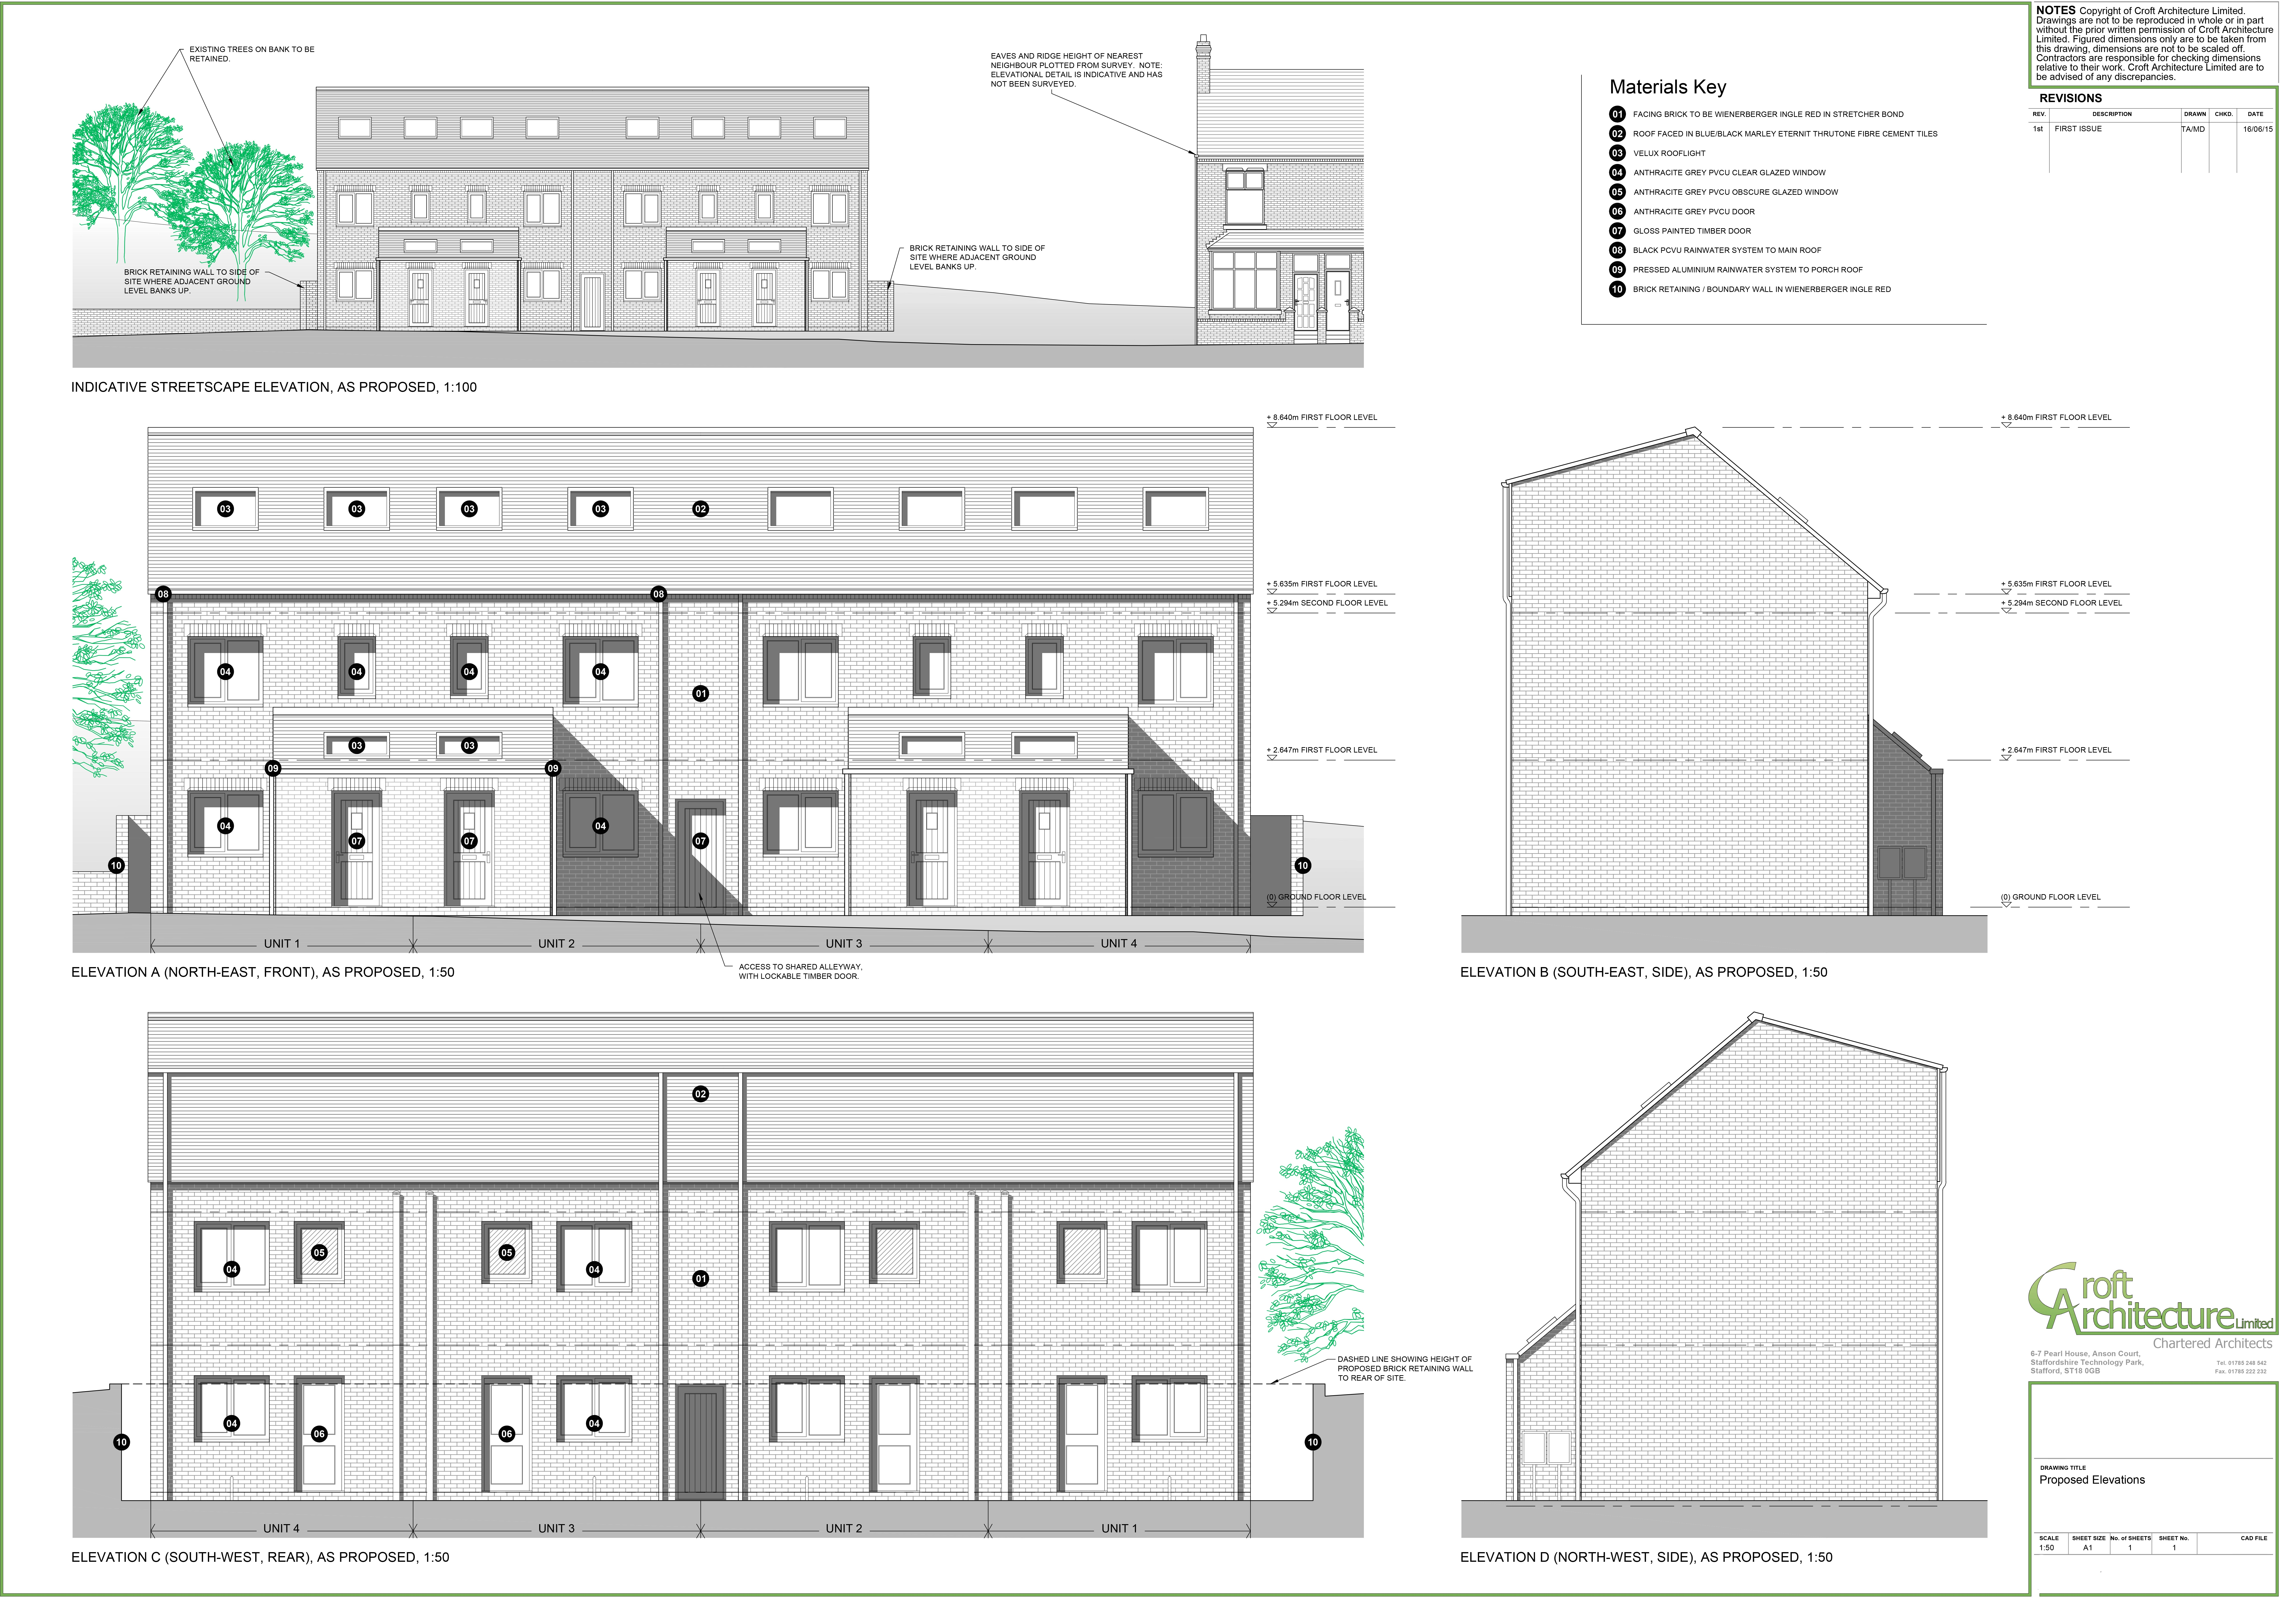 New Homes in Stoke-on-Trent Croft Architecture Ltd